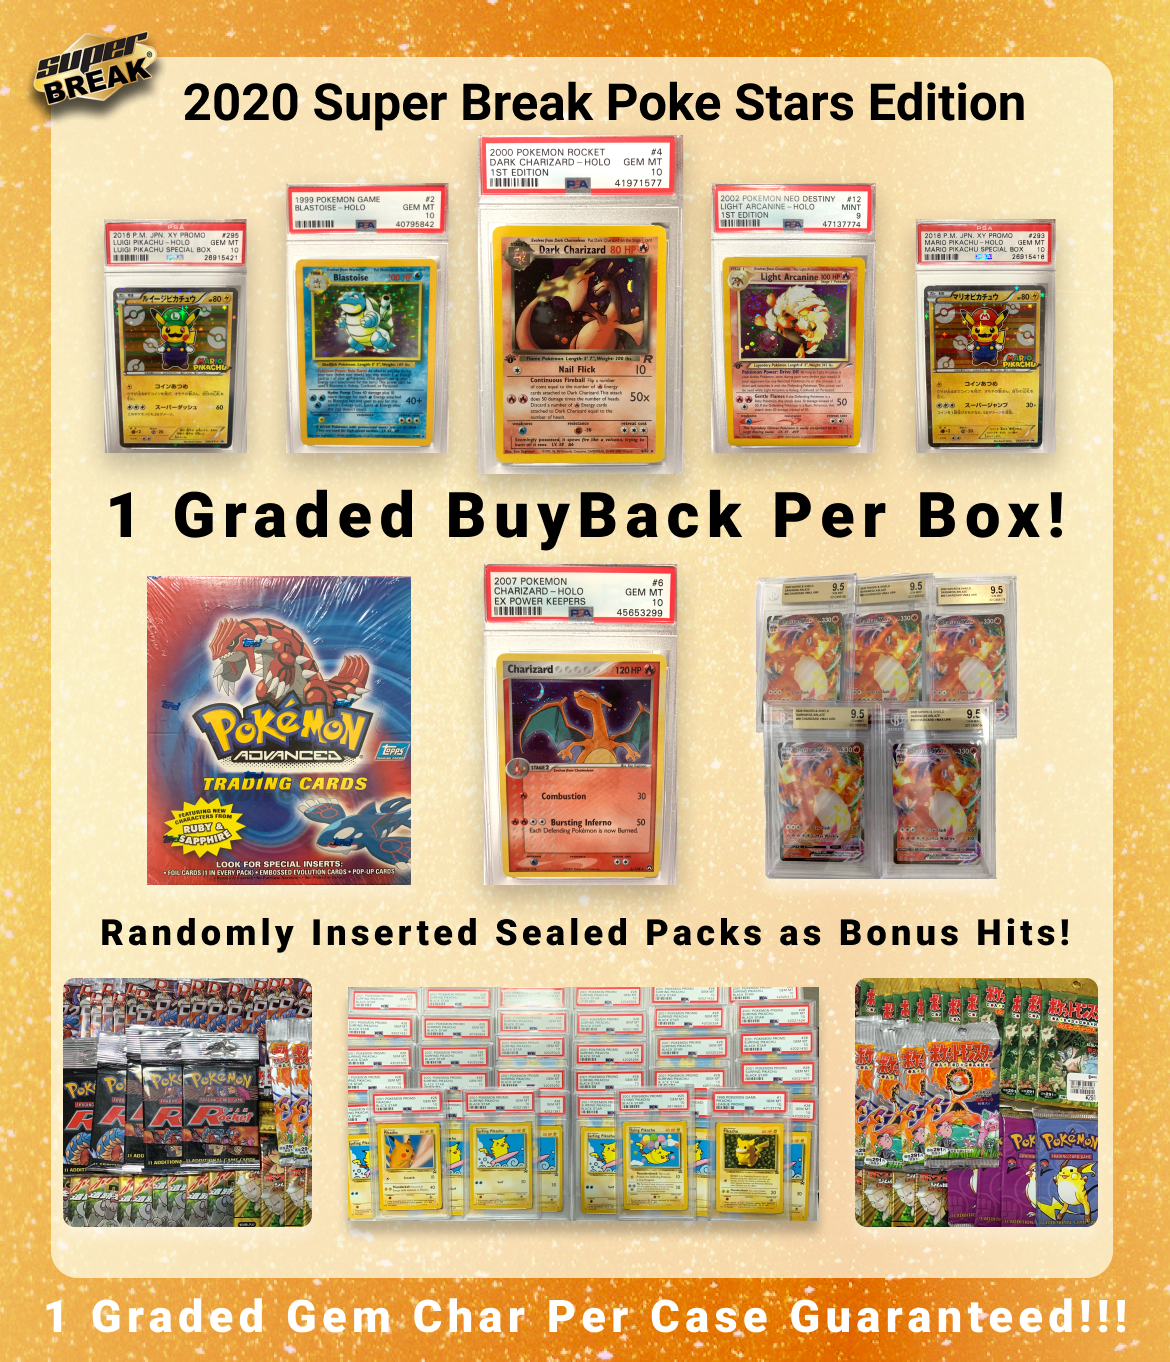 2020 Super Break Poke Stars Edition